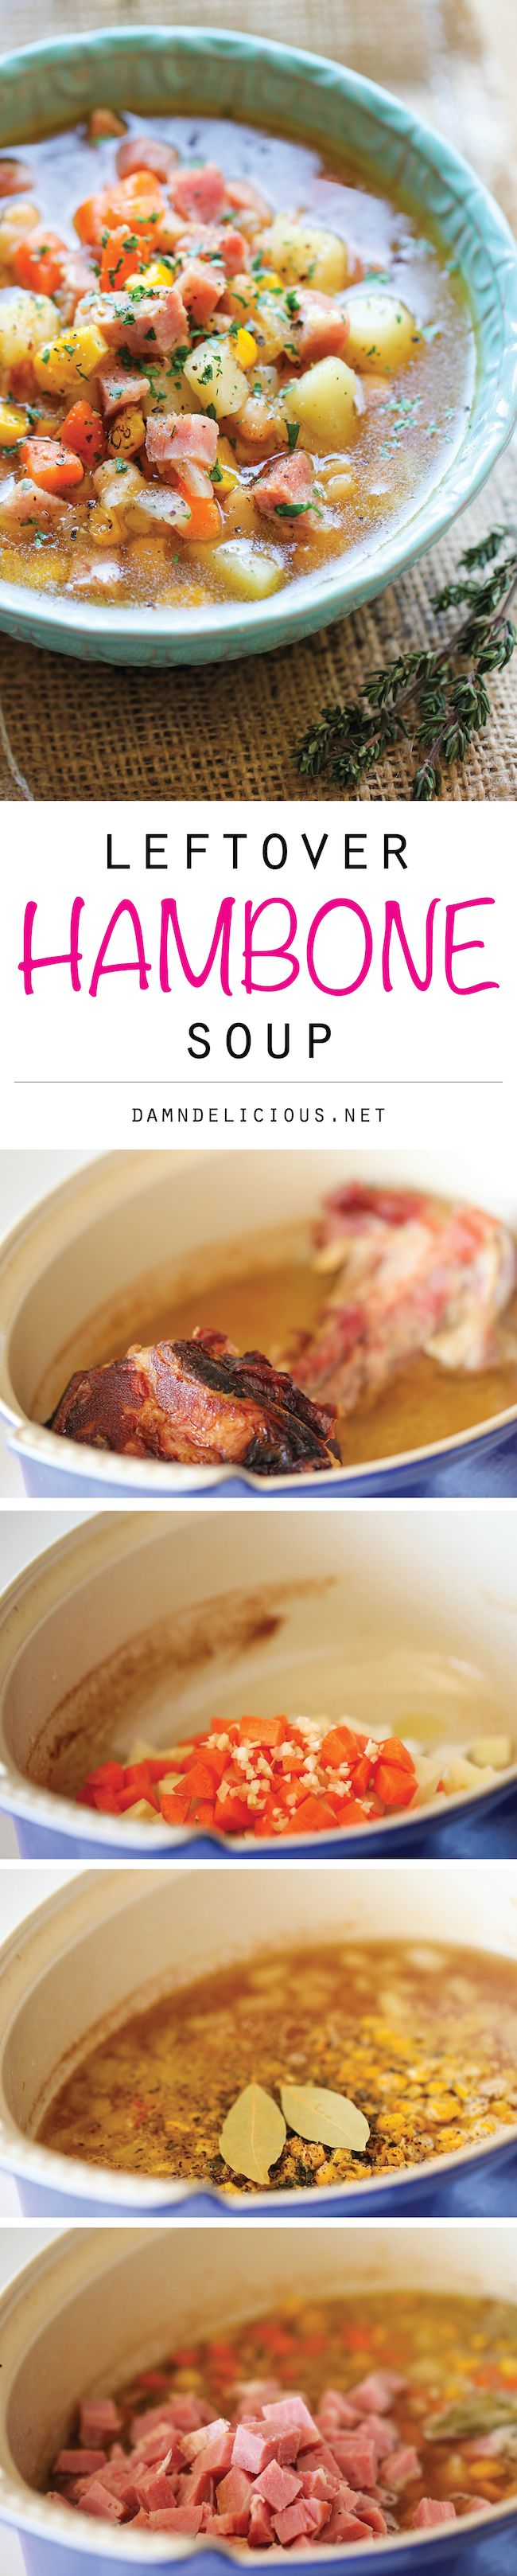 Leftover Ham Bone Soup - Use up your leftover ham bone to make this cozy, hearty soup loaded with tons of veggies and chunks of sweet ham!